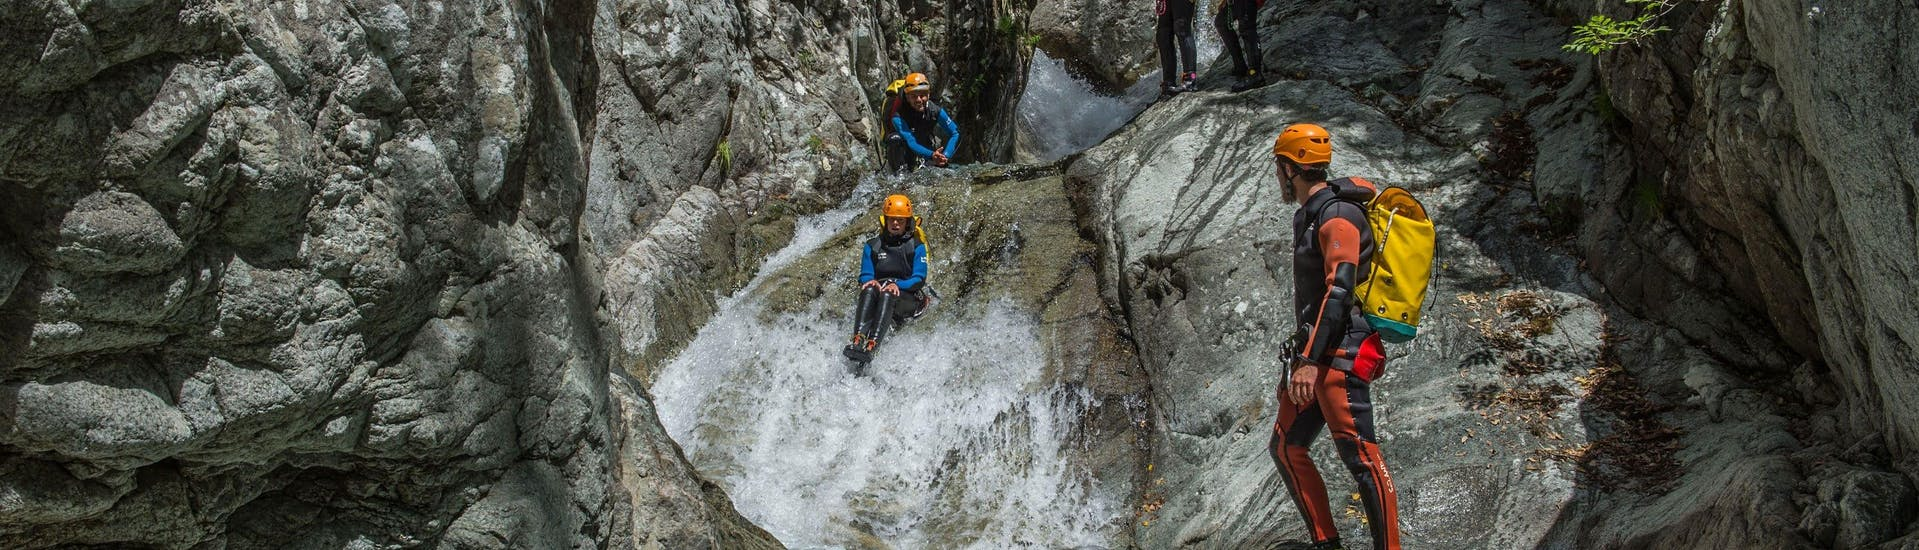 A group slides in the Canyon du Verghellu during the Canyoning Sport activity with their instructor from Canyon Corse.